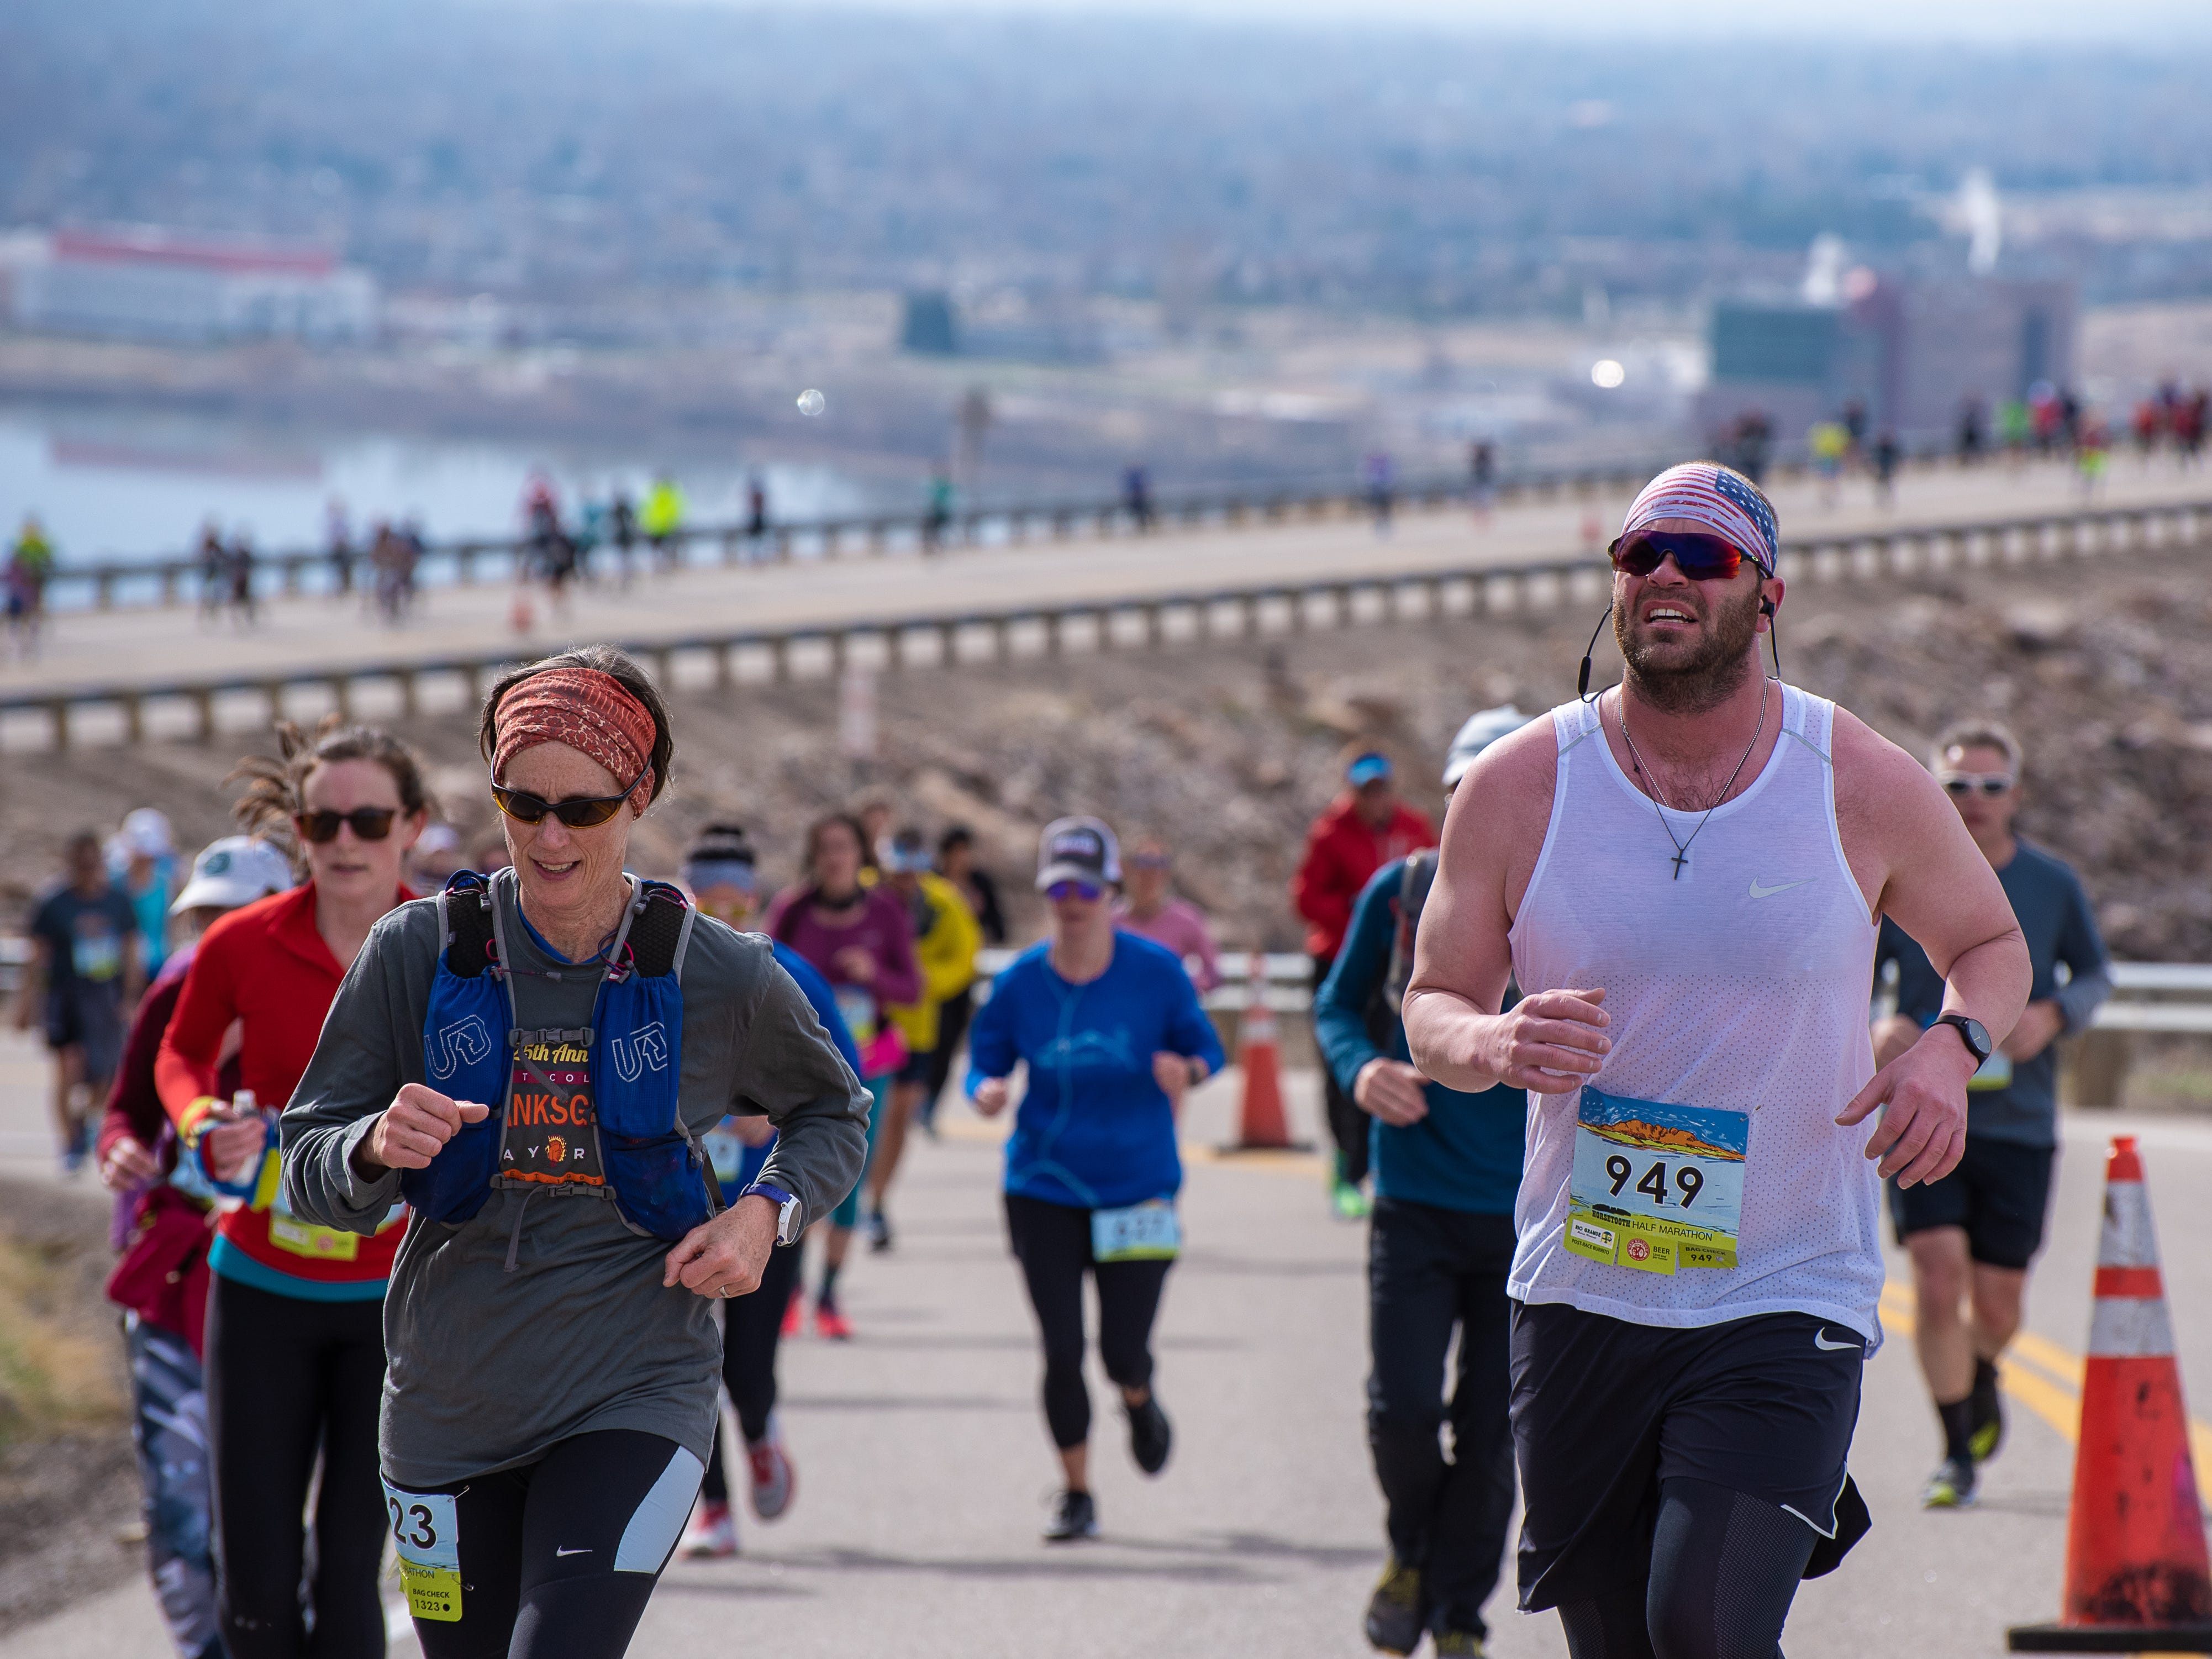 Scenes from the Horsetooth Half Marathon on Sunday, April 14, 2019, in Fort Collins, Colo.